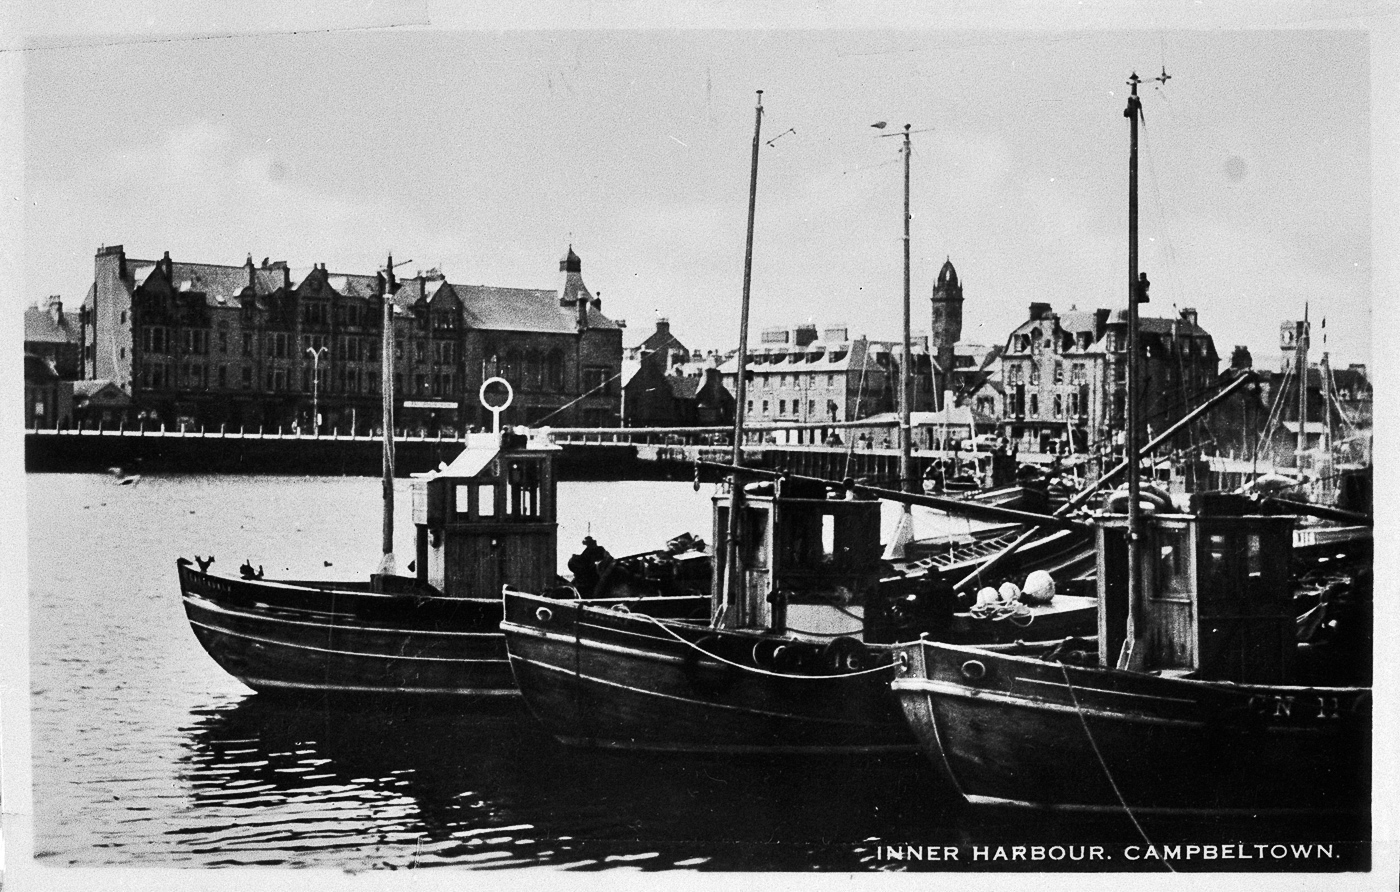 Postcard entitled 'Inner Harbour, Campbeltown' showing ringnetters 'Acadia', CN56, 'Harvest Queen', CN167, and 'Regina Maris', CN118. 'Acacia', CN56, was built in Portavogie, 1949. 'Harvest Queen', CN167, was built in Fairlie in 1949 then later sold to Skye in 1983.